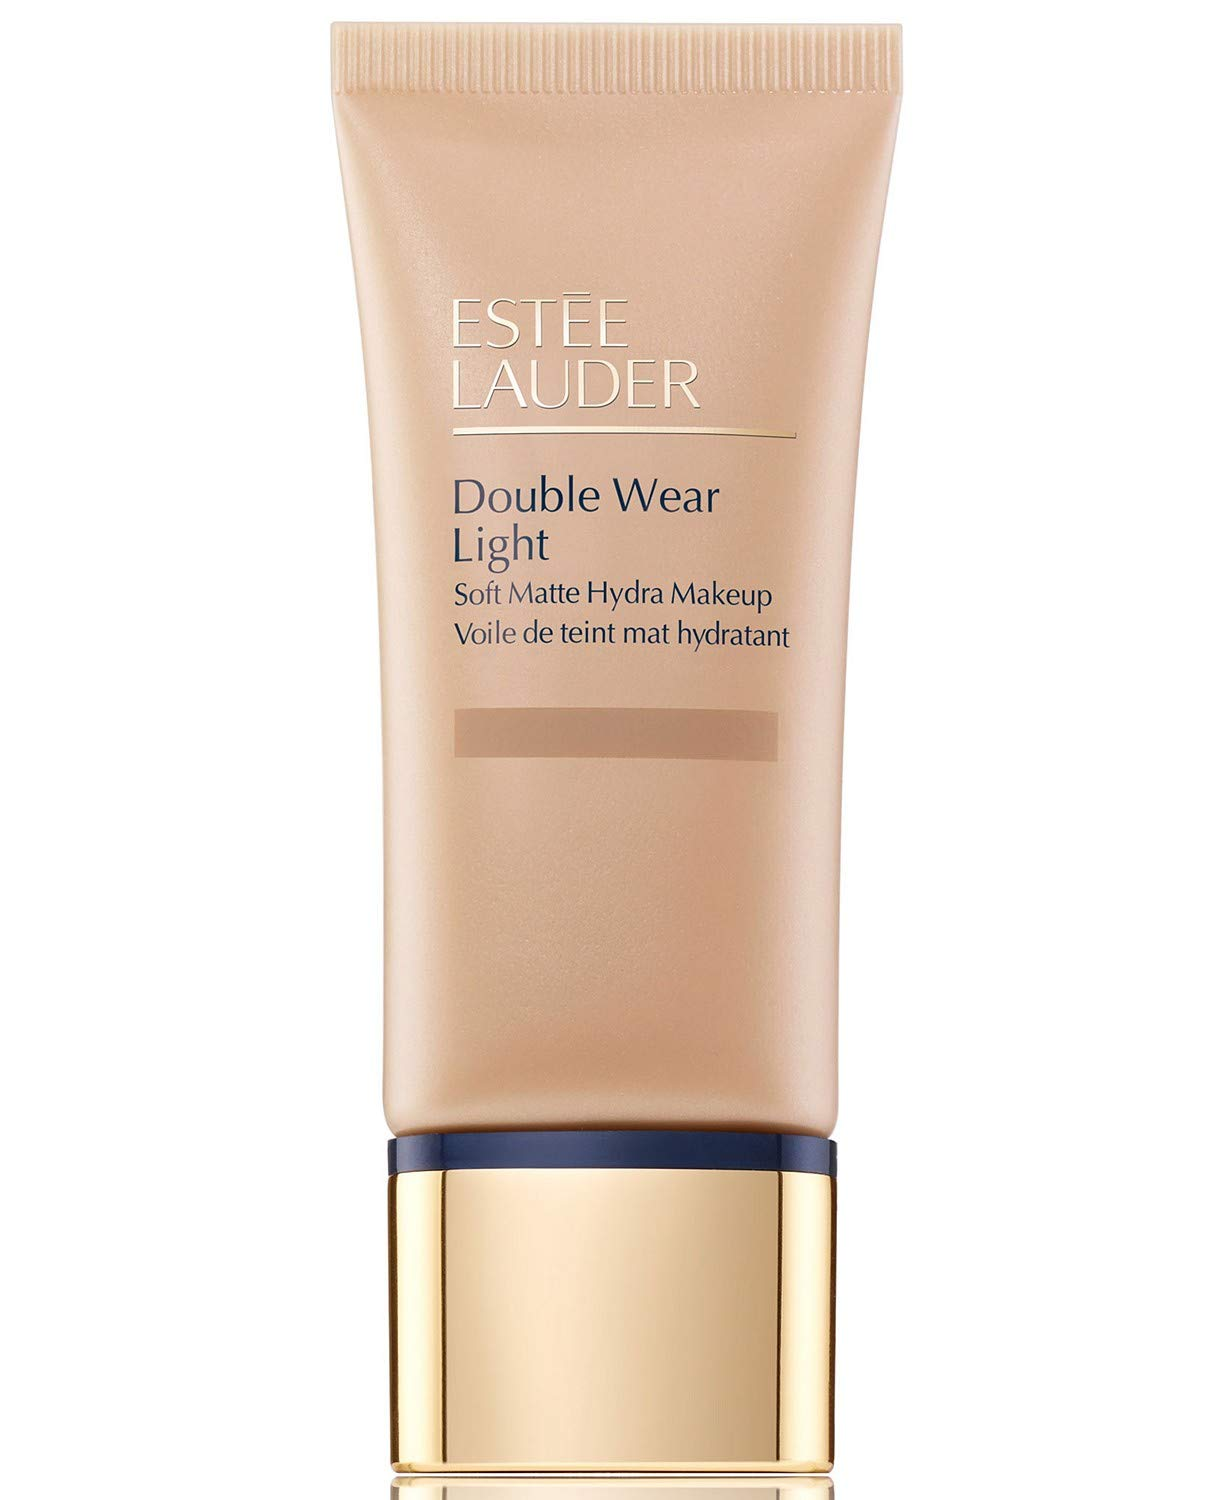 Estee Lauder Double Wear Light Soft Matte Hydra Makeup, 1 Ounce 3C2 Pebble